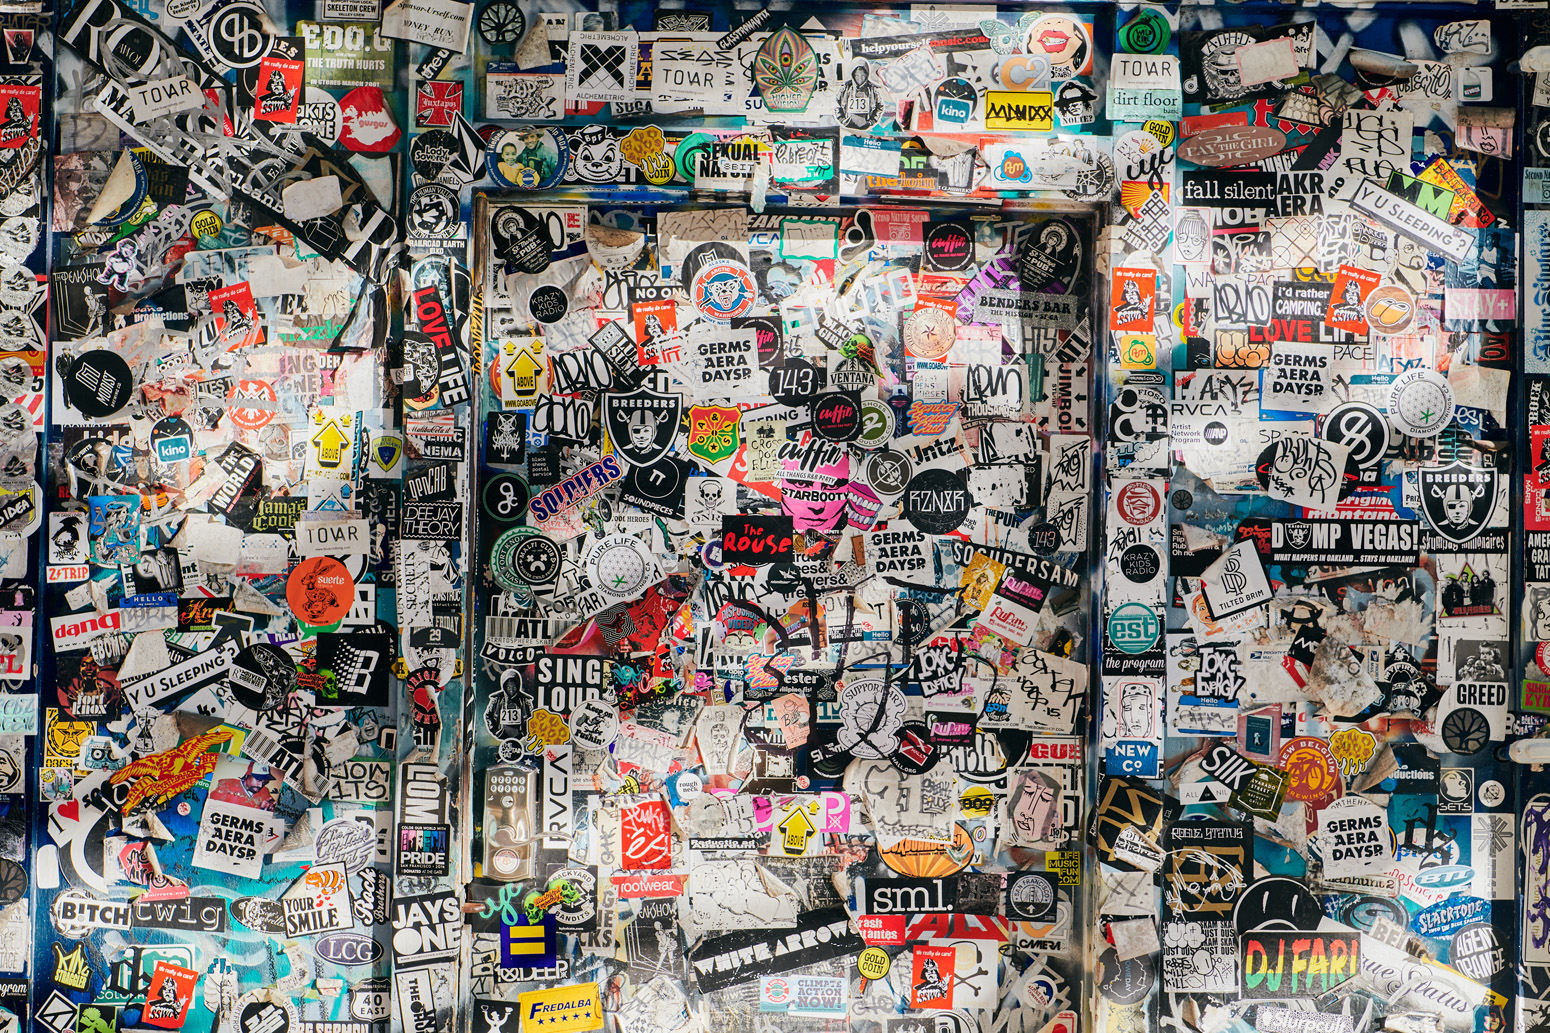 A door and wall plastered in hundreds of colorful stickers